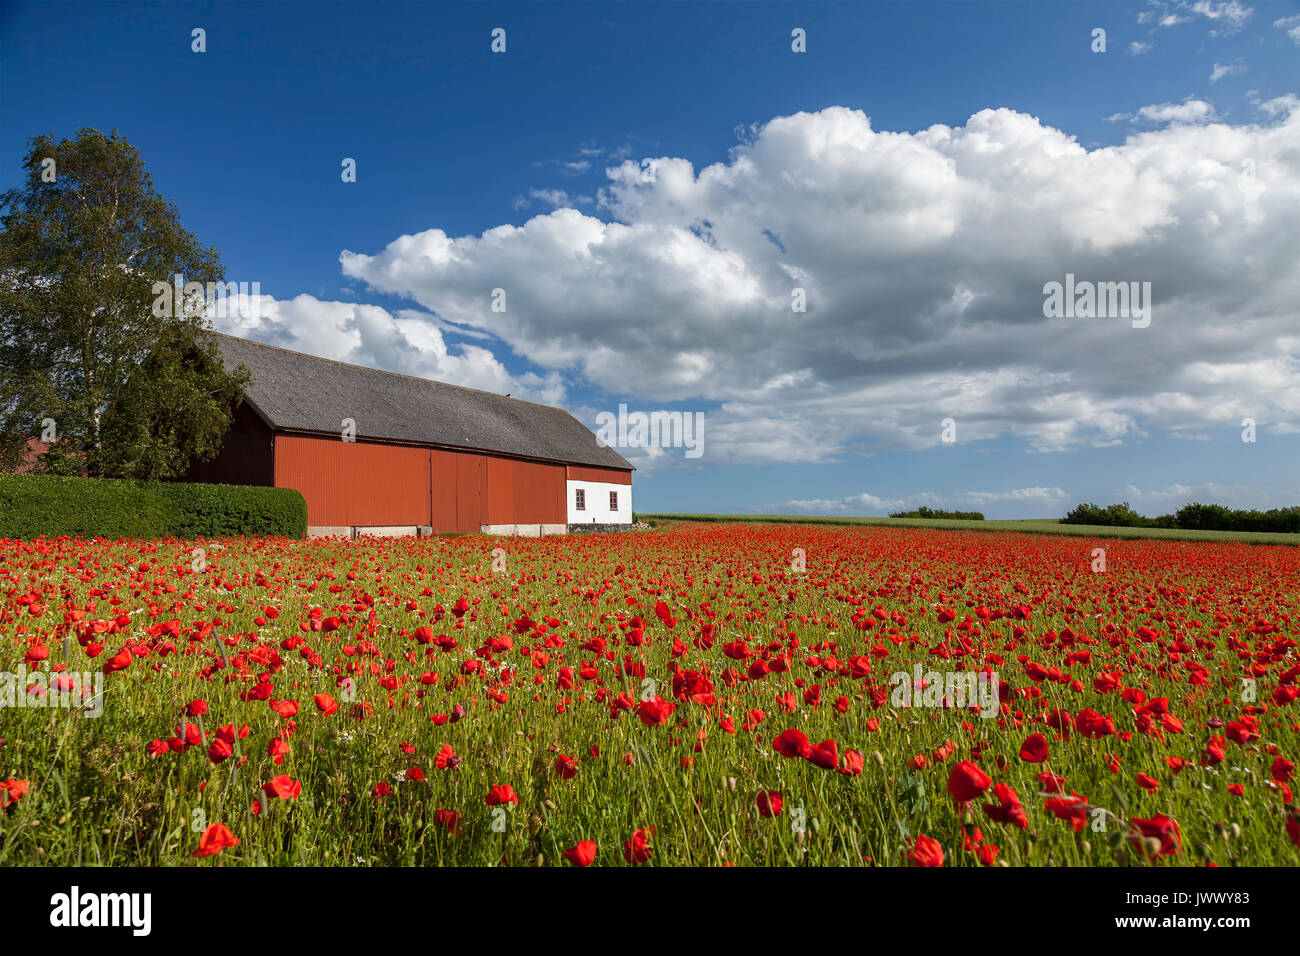 Image of a large field of red poppies with a farm building. - Stock Image